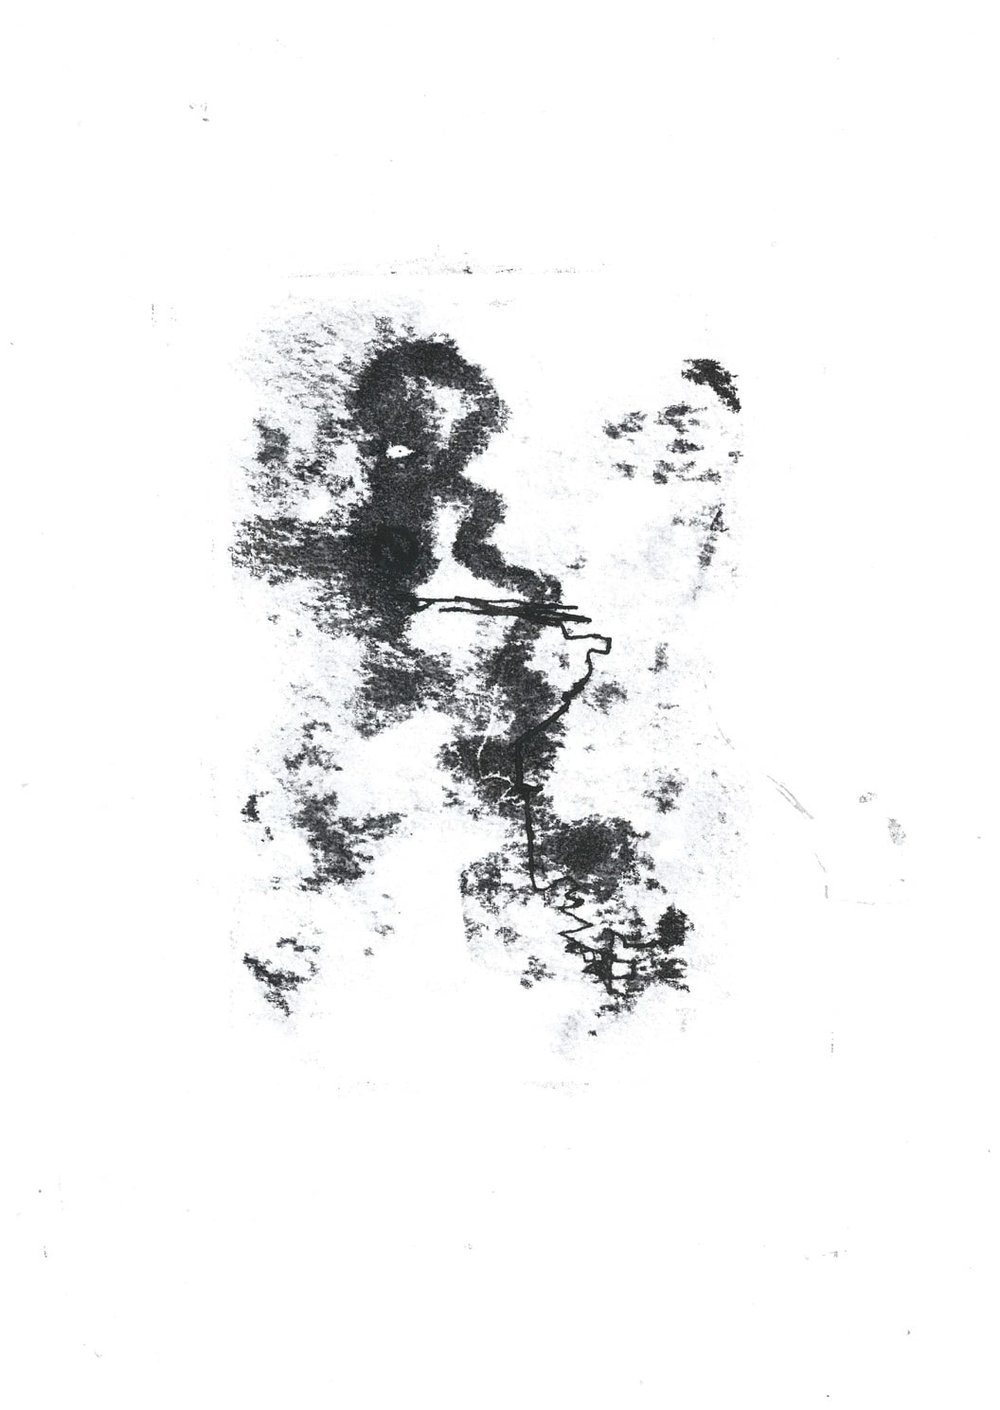 ink-print-memory-of-a-space-5-min.jpg